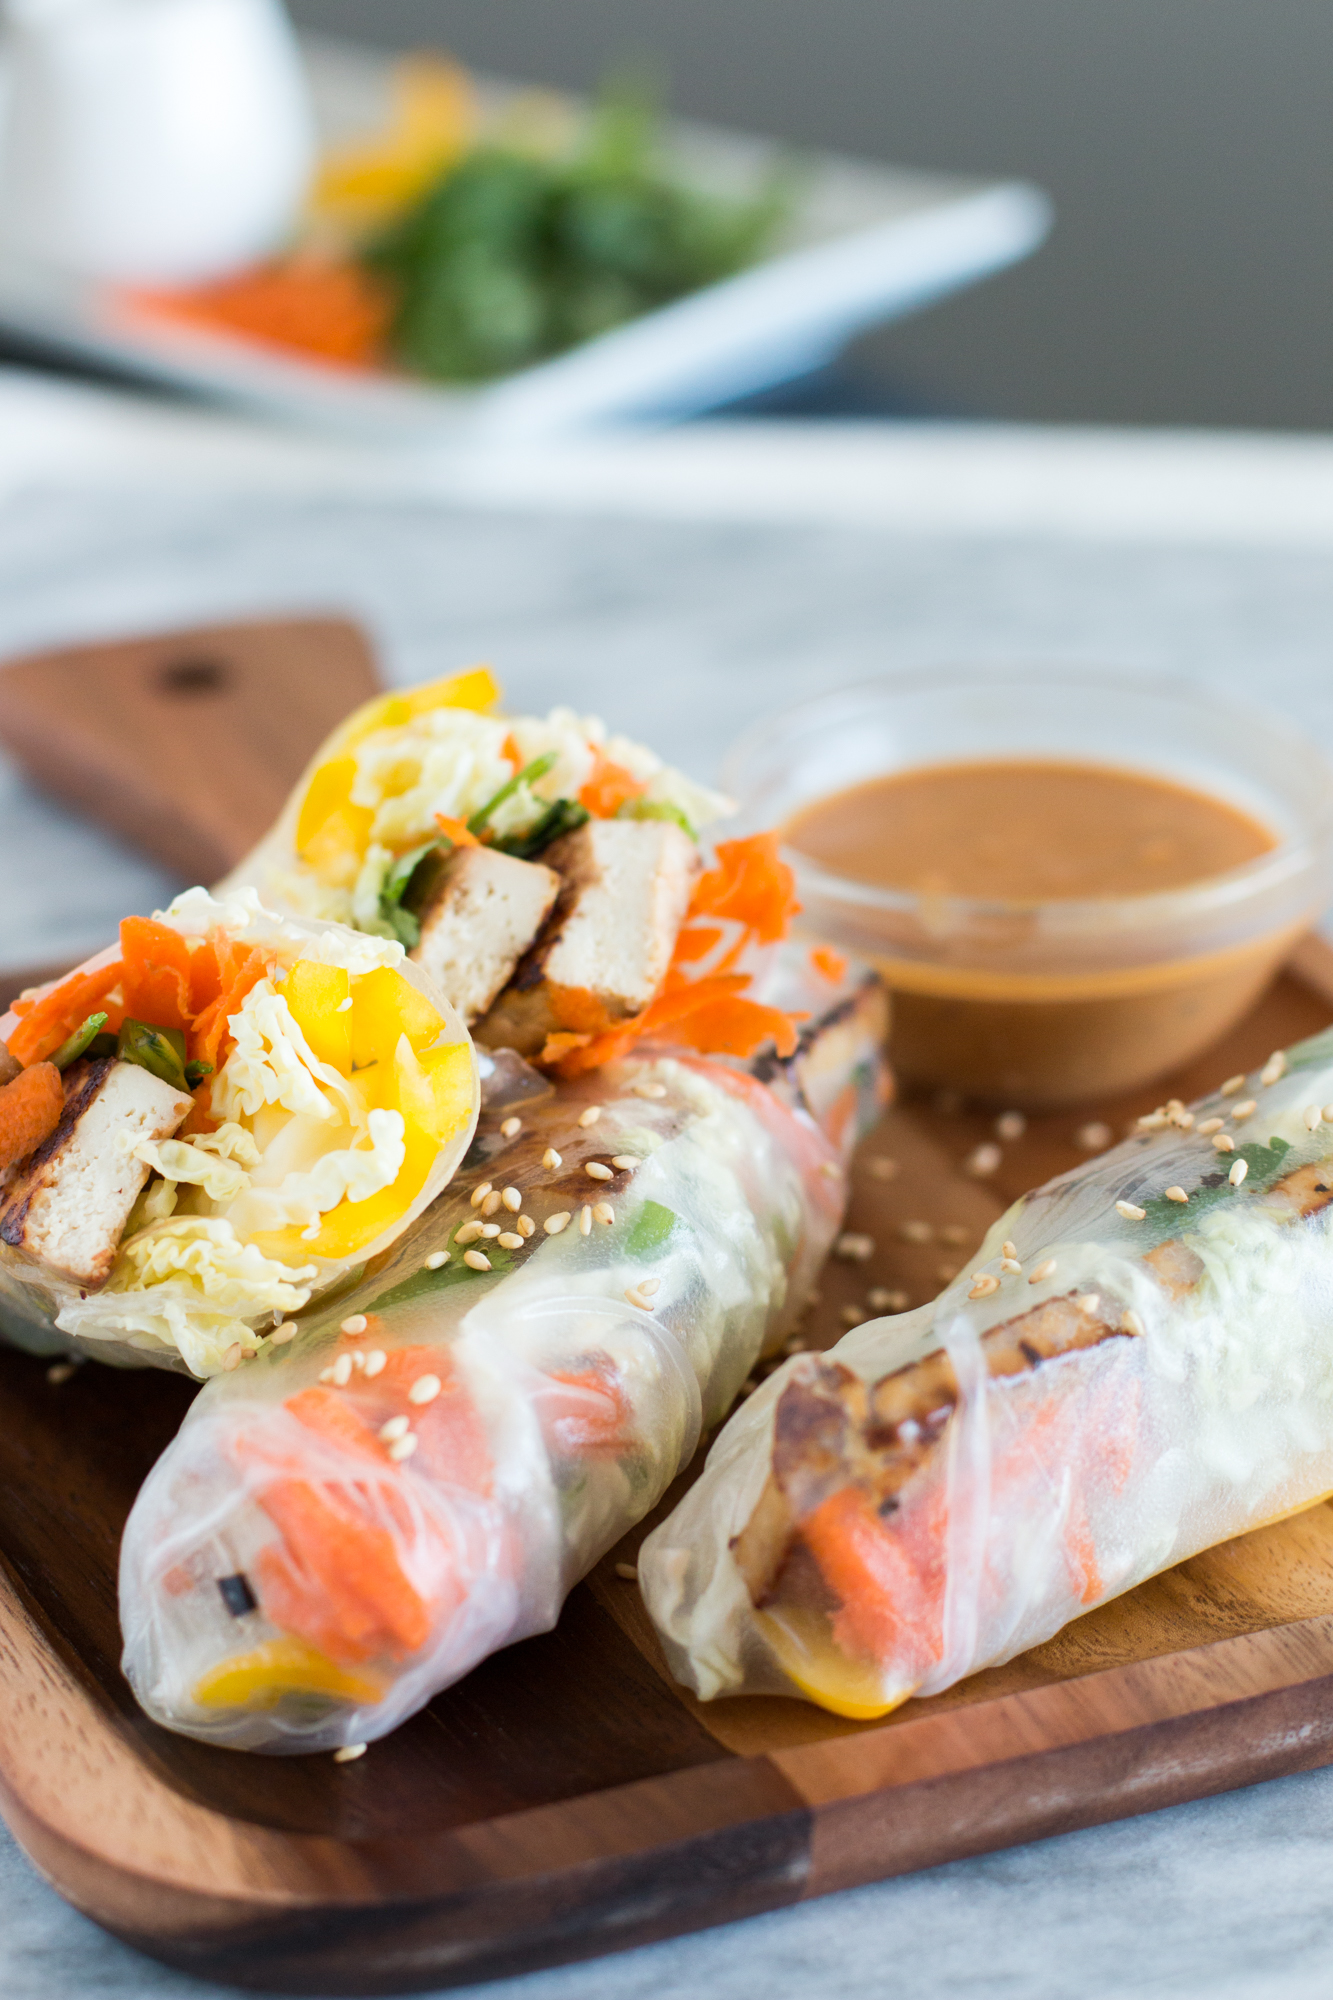 Tofu Spring Rolls  with iron-rich tofu and veggies providing Vitamin C